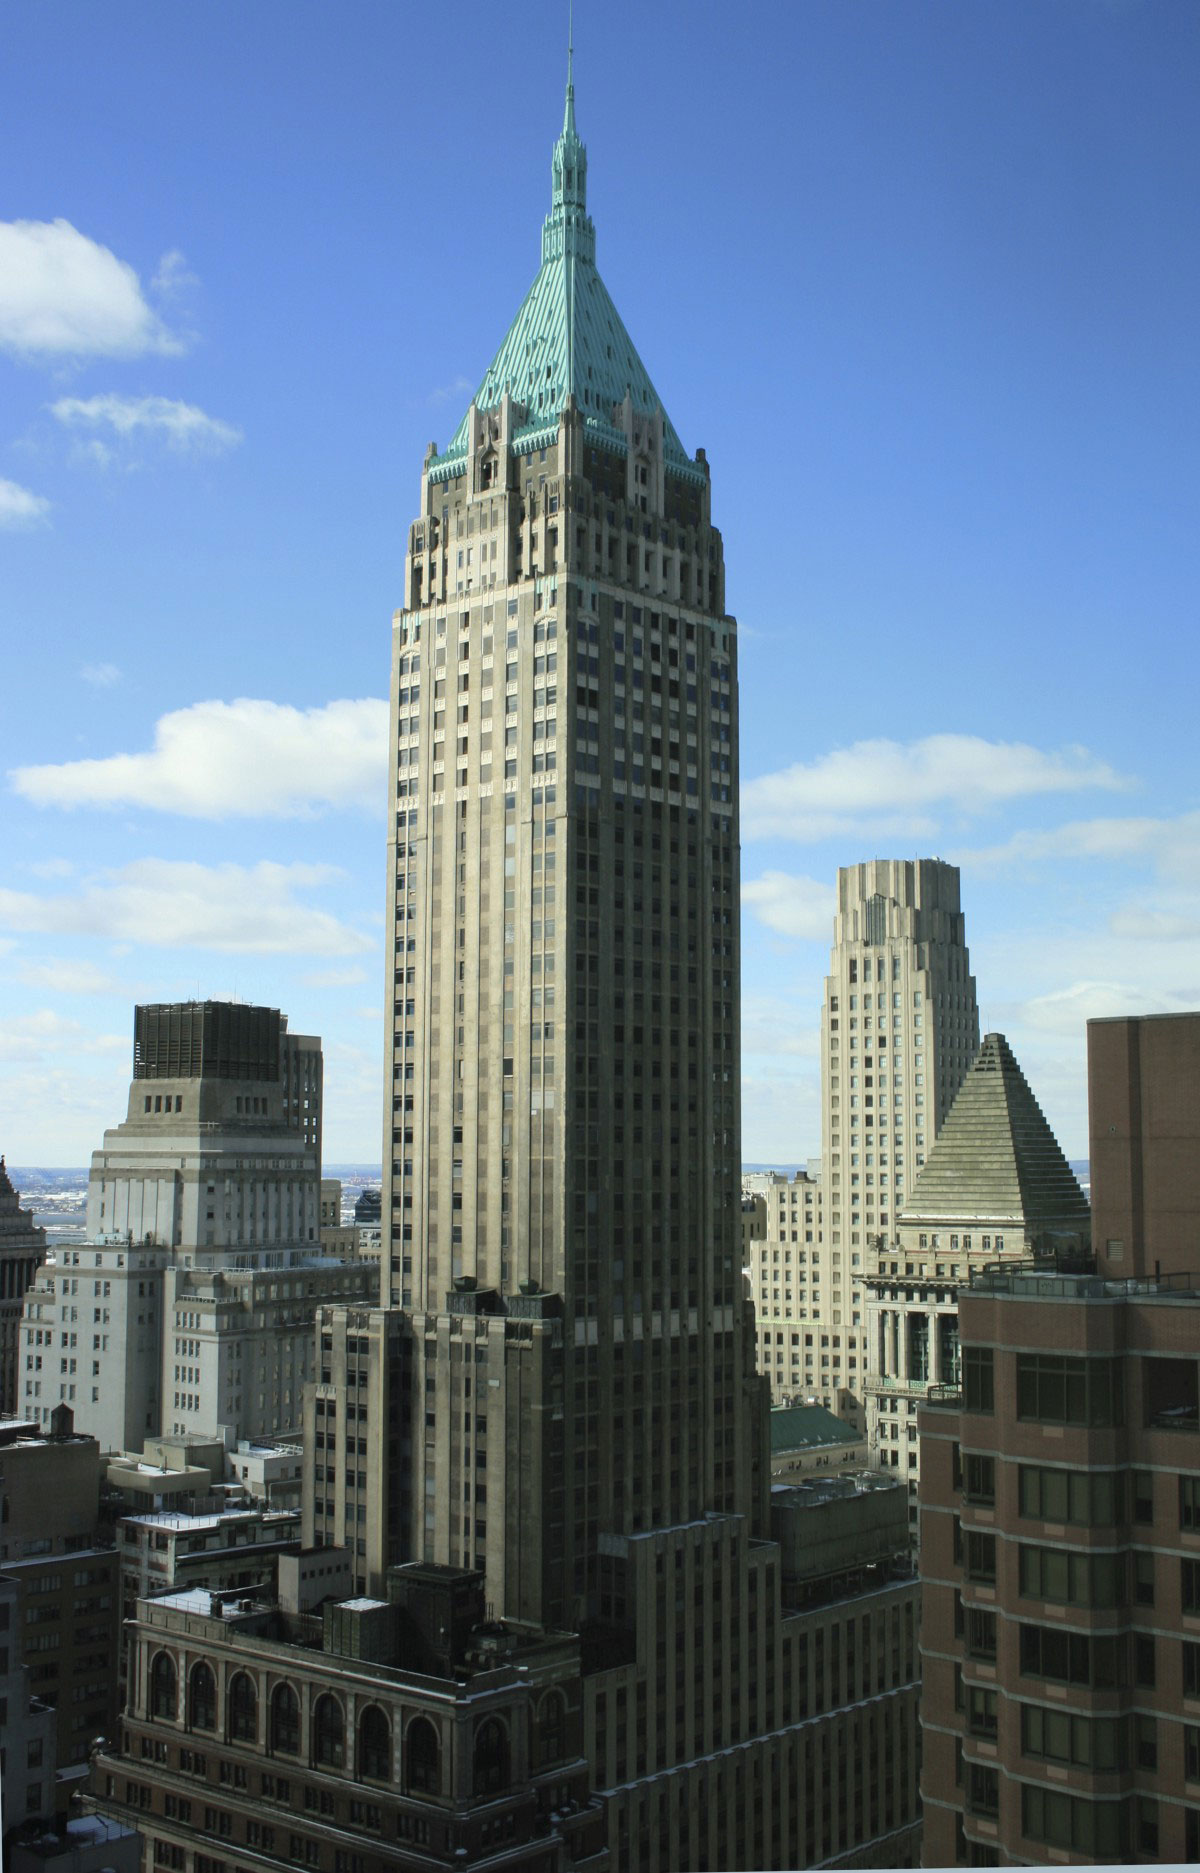 40 Wall Street The most impressive skyscrapers in New York